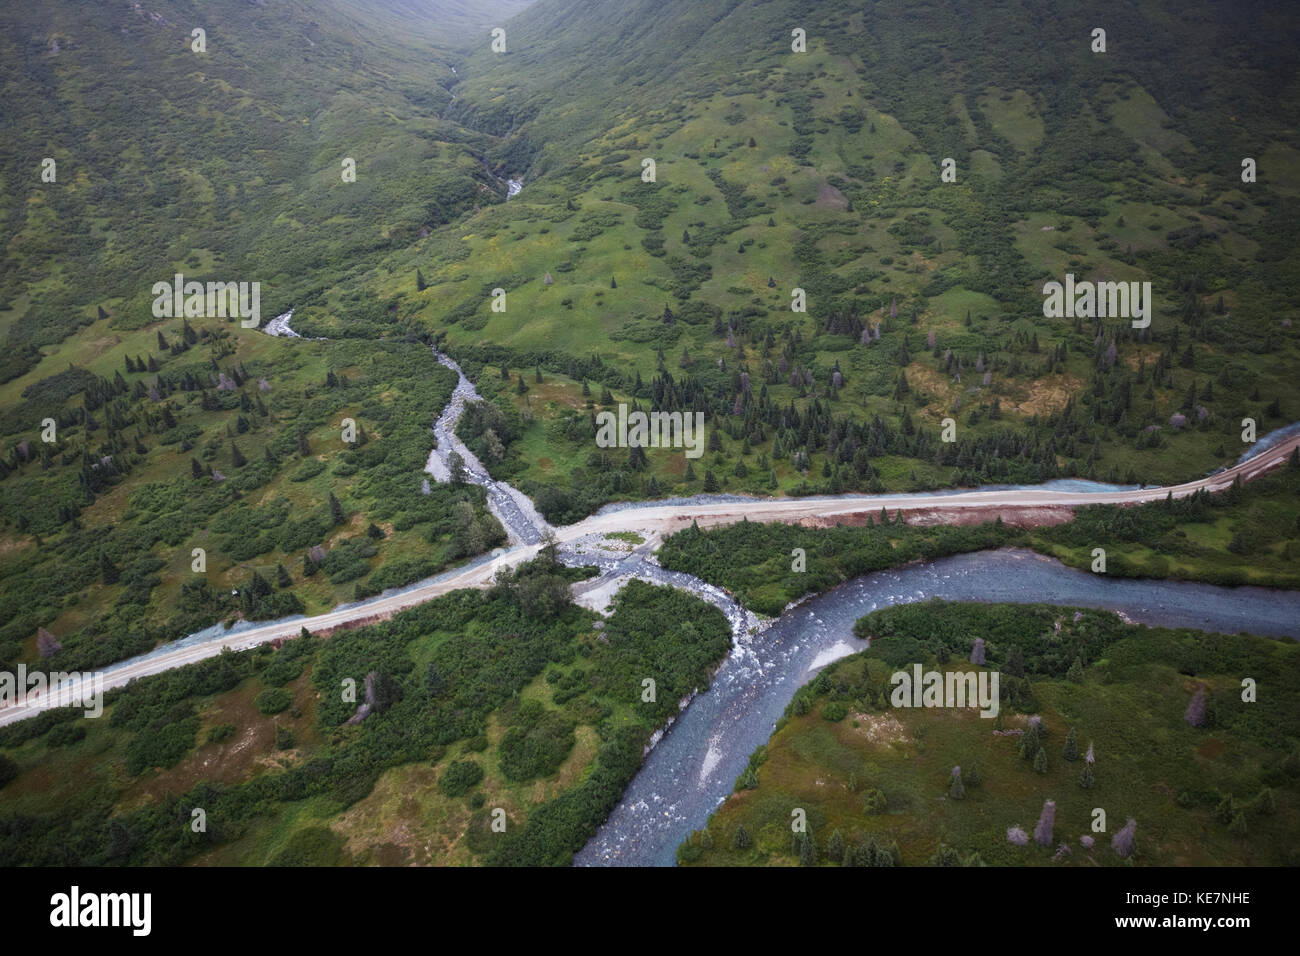 Williamsport-Pile Bay Portage Road And Chinkelyes Creek, Chigmit Mountains; Alaska, United States Of America - Stock Image